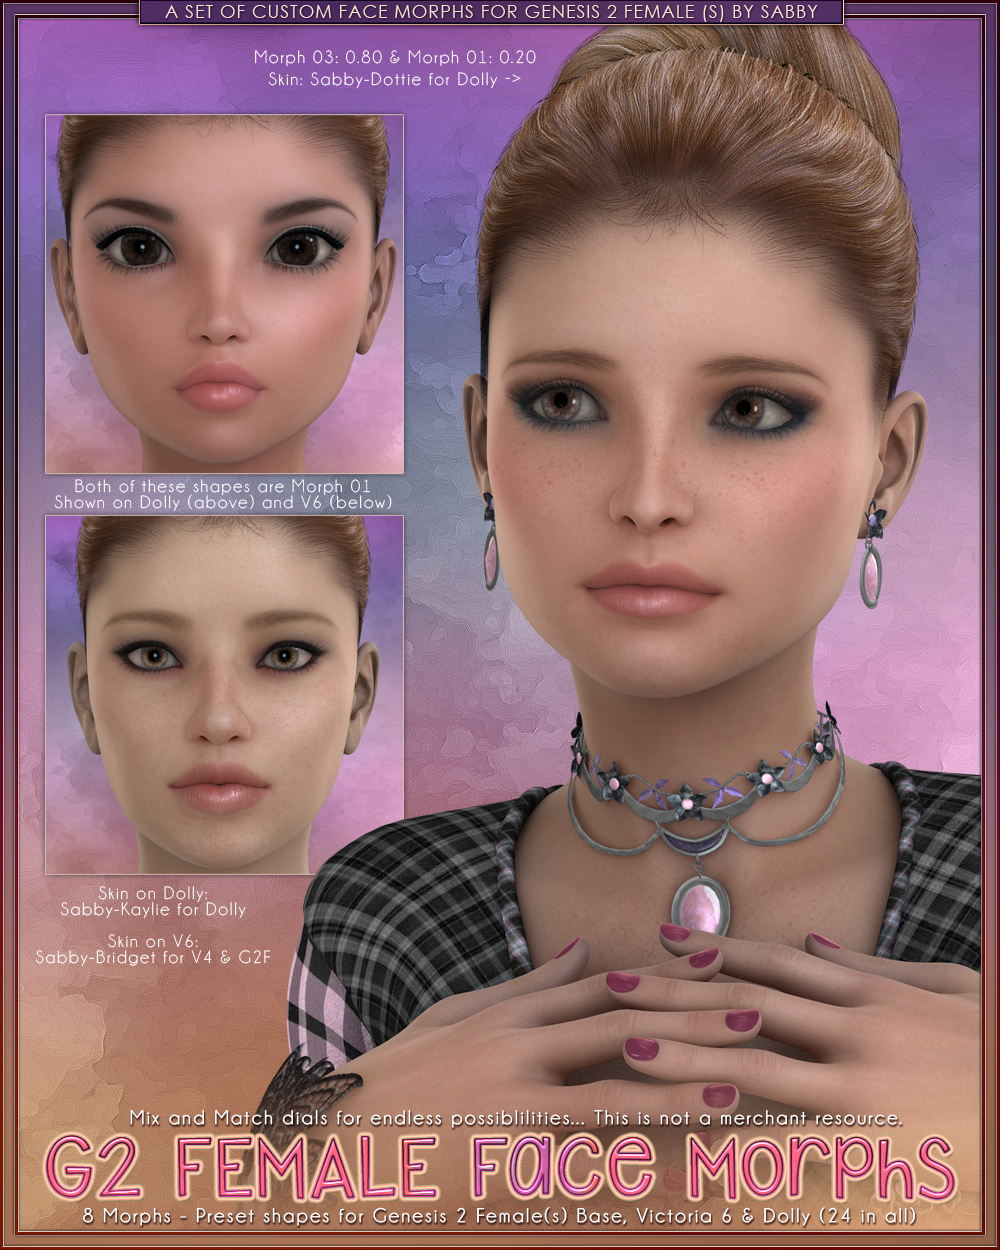 Genesis 2 Female Faces by Sabby